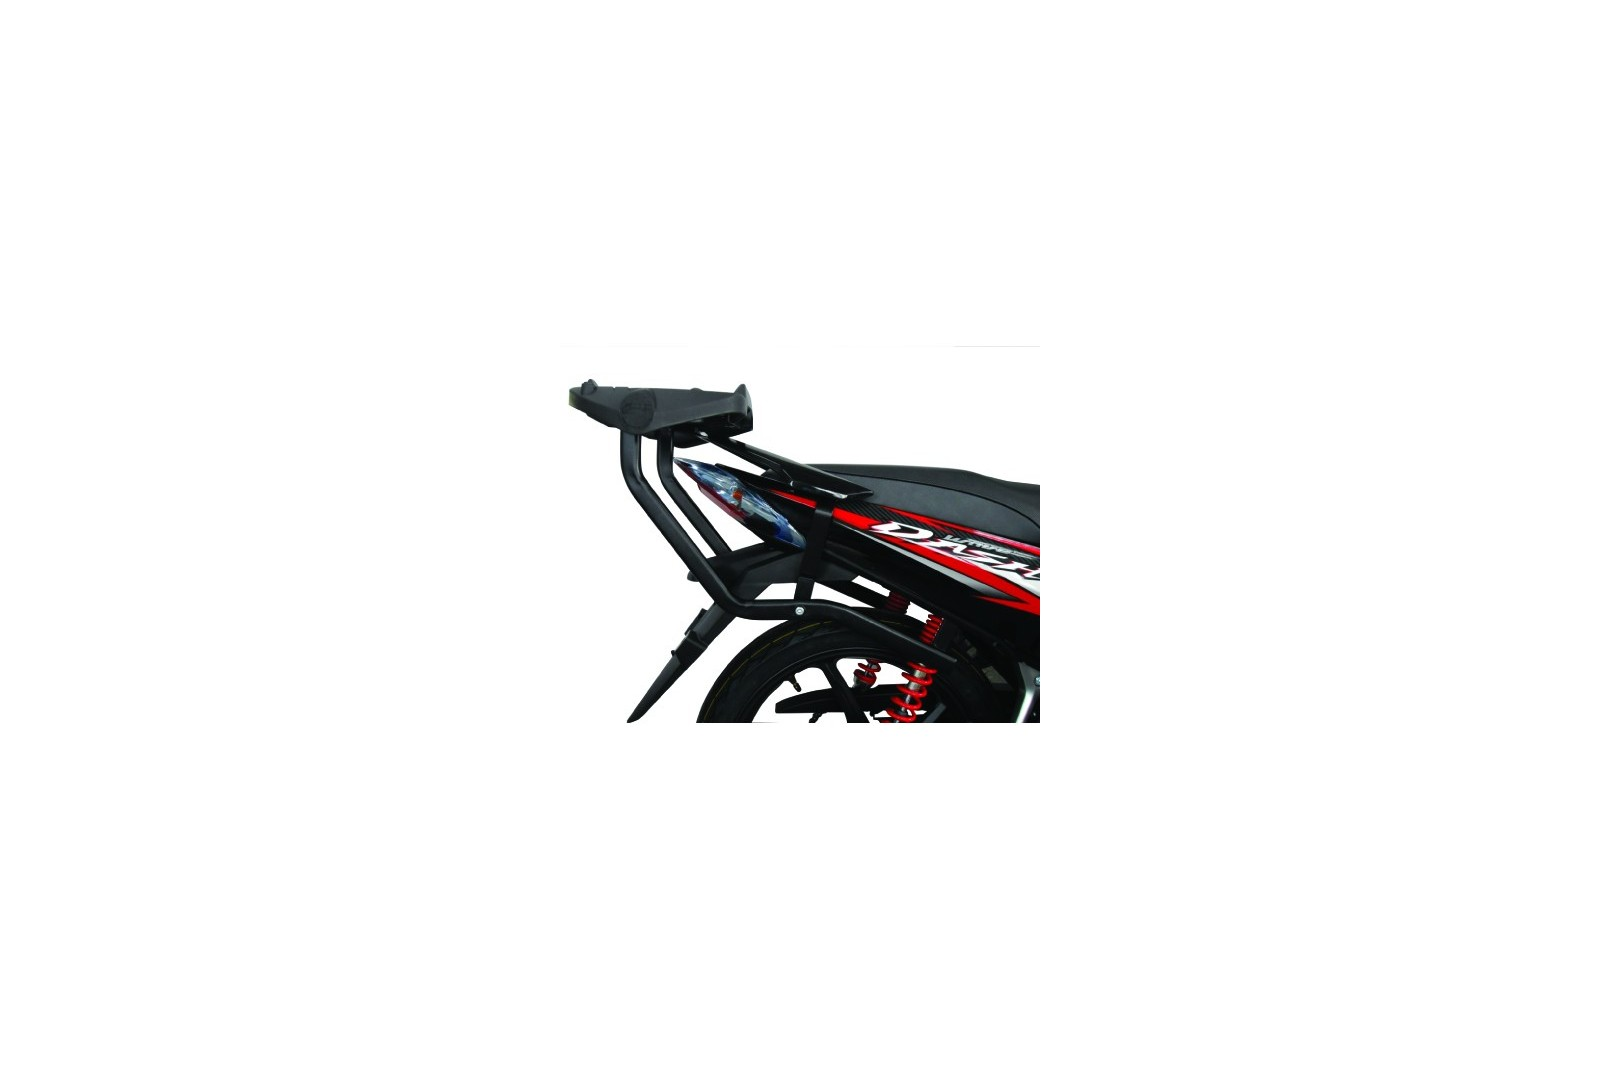 Givi HR3 Top Box Luggage Rack with Mounting Plate - Honda Wave 110/110i /Wave RS/RSX/Dash/Blade